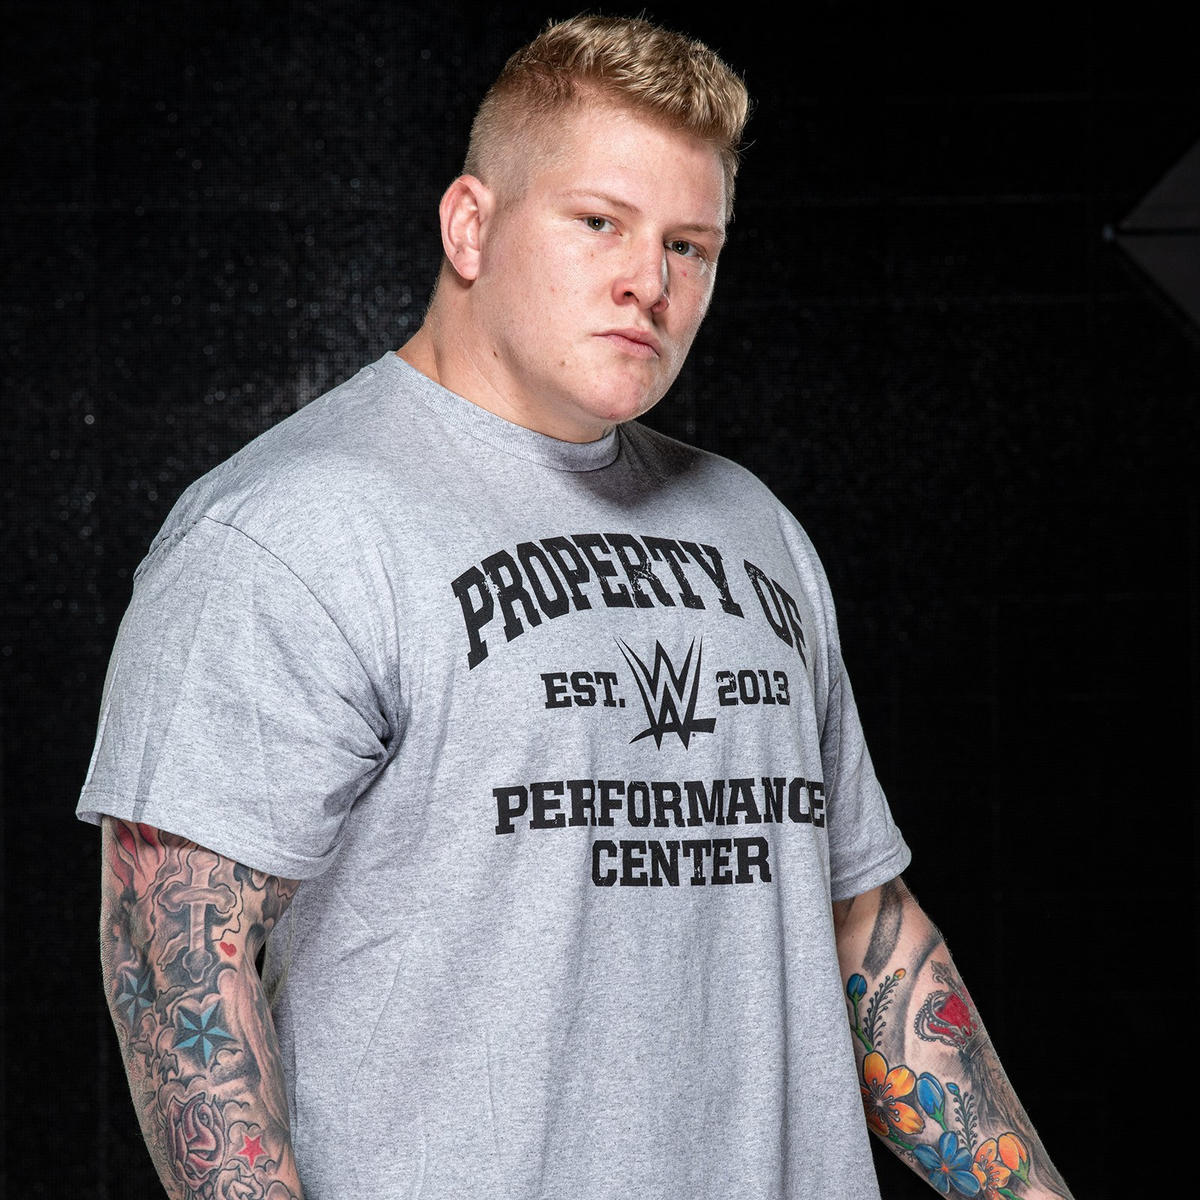 The big man was an offensive lineman for the University of Central Florida and has caught the eye of Paul Heyman on social media.